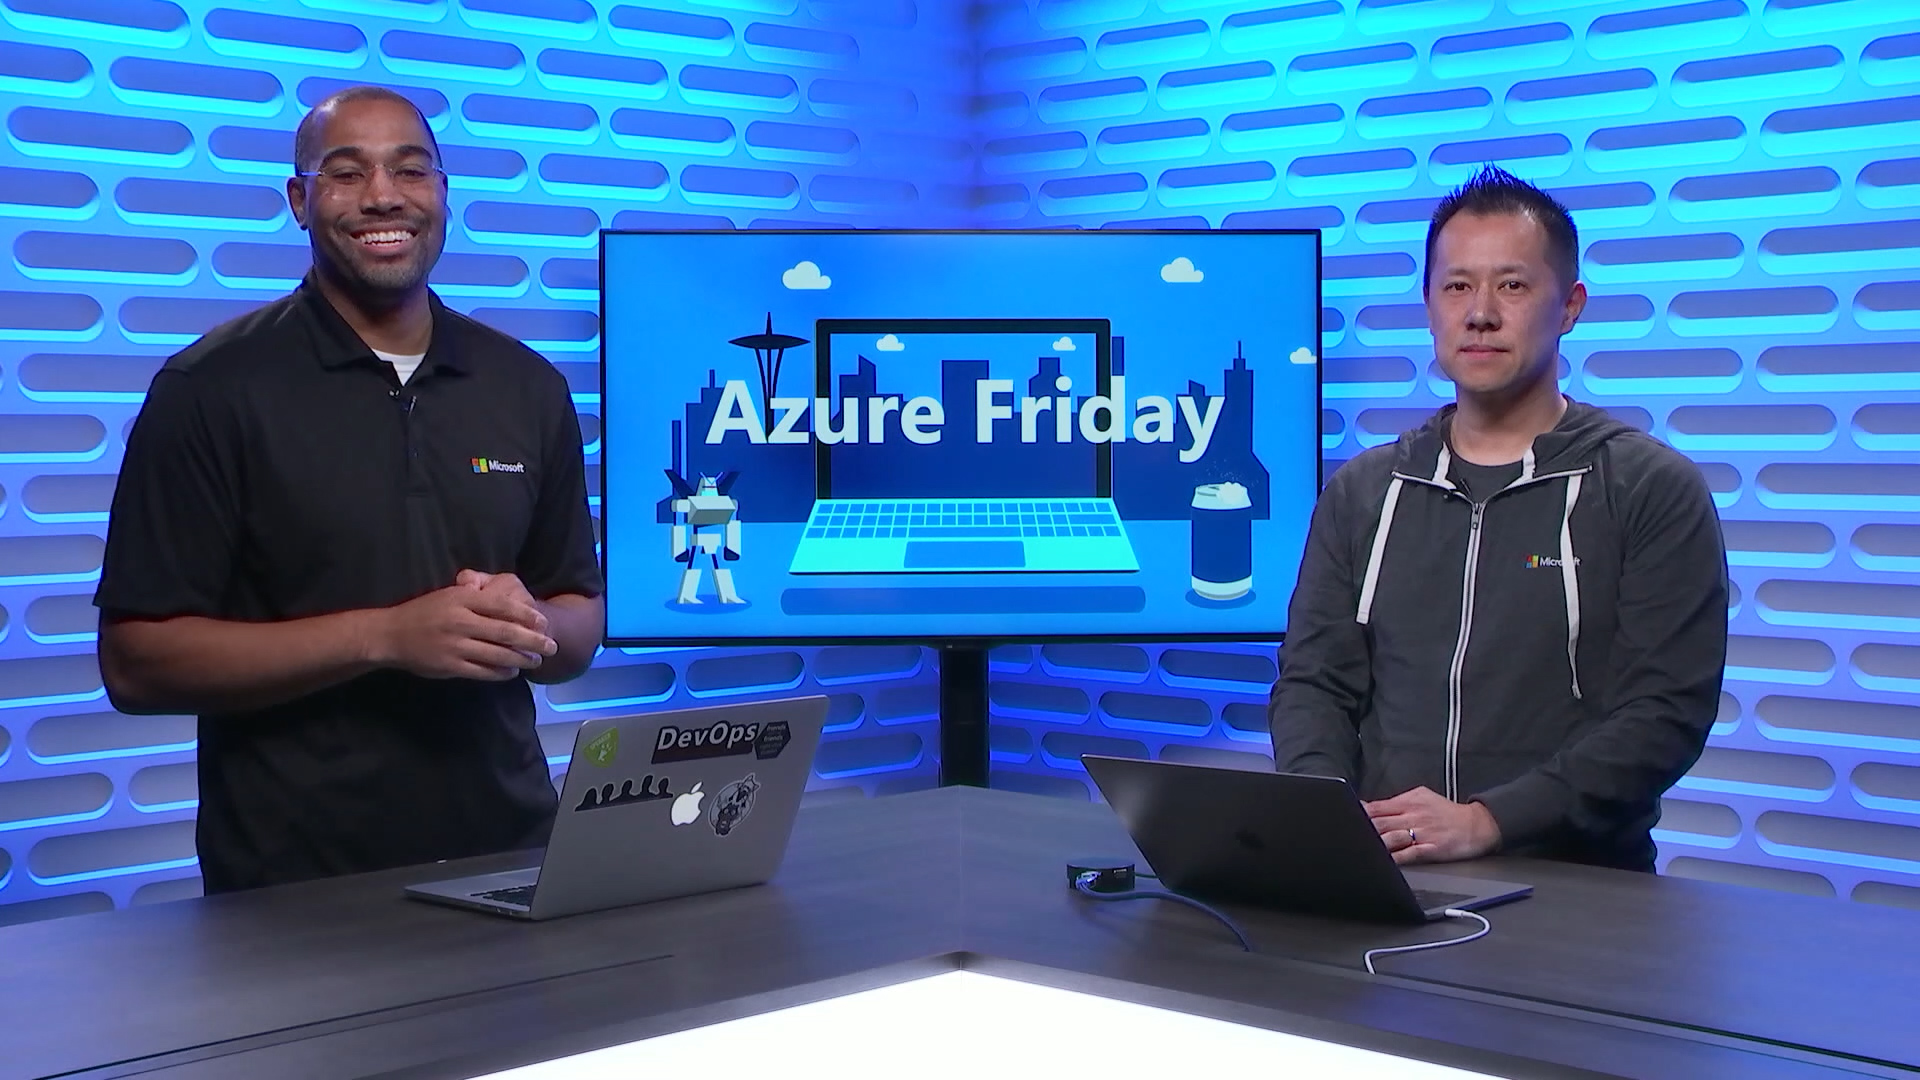 Go serverless: Real-time applications with Azure SignalR Service